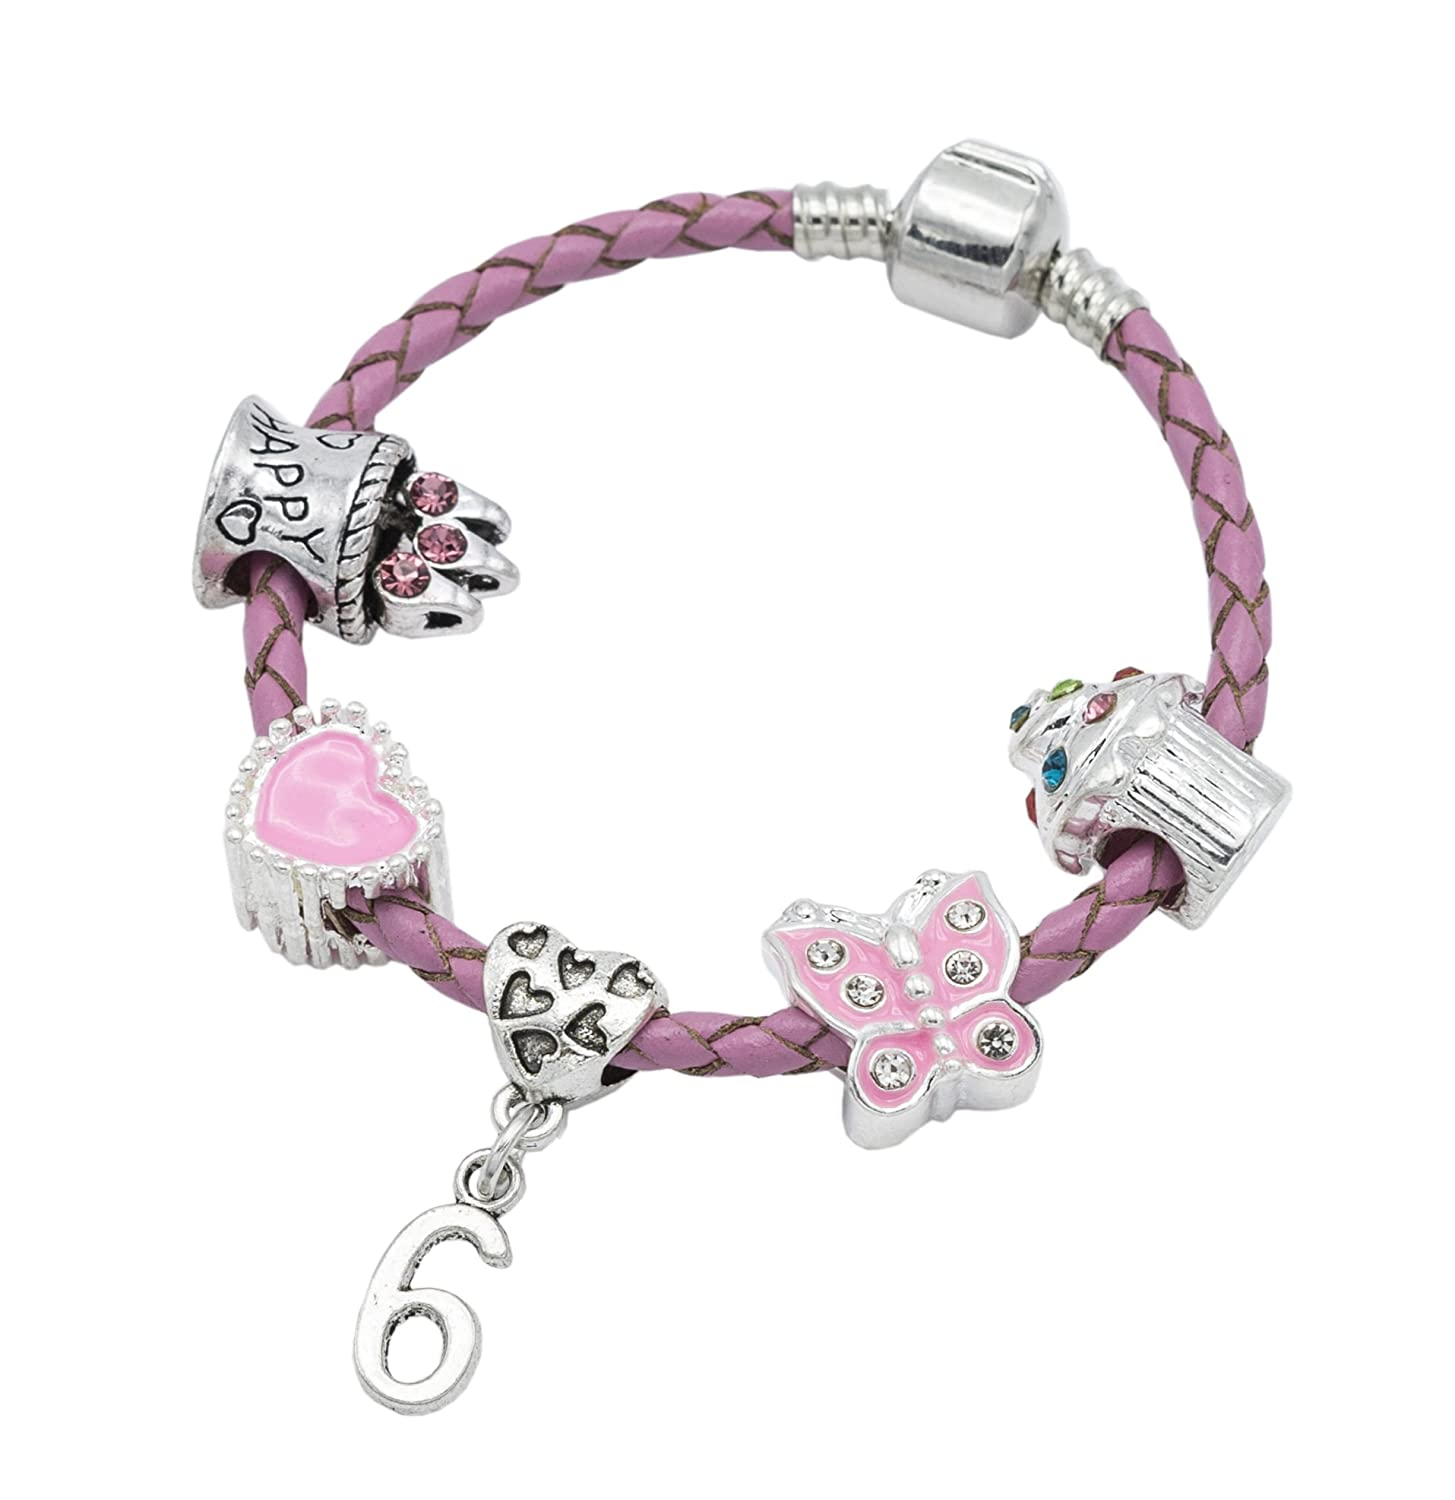 Children's Pink Leather Happy 6th Birthday Charm Bracelet With Lovely Jewellery Hut Gift Pouch - Girl's & Children's Birthday Gift Jewellery BRKID6